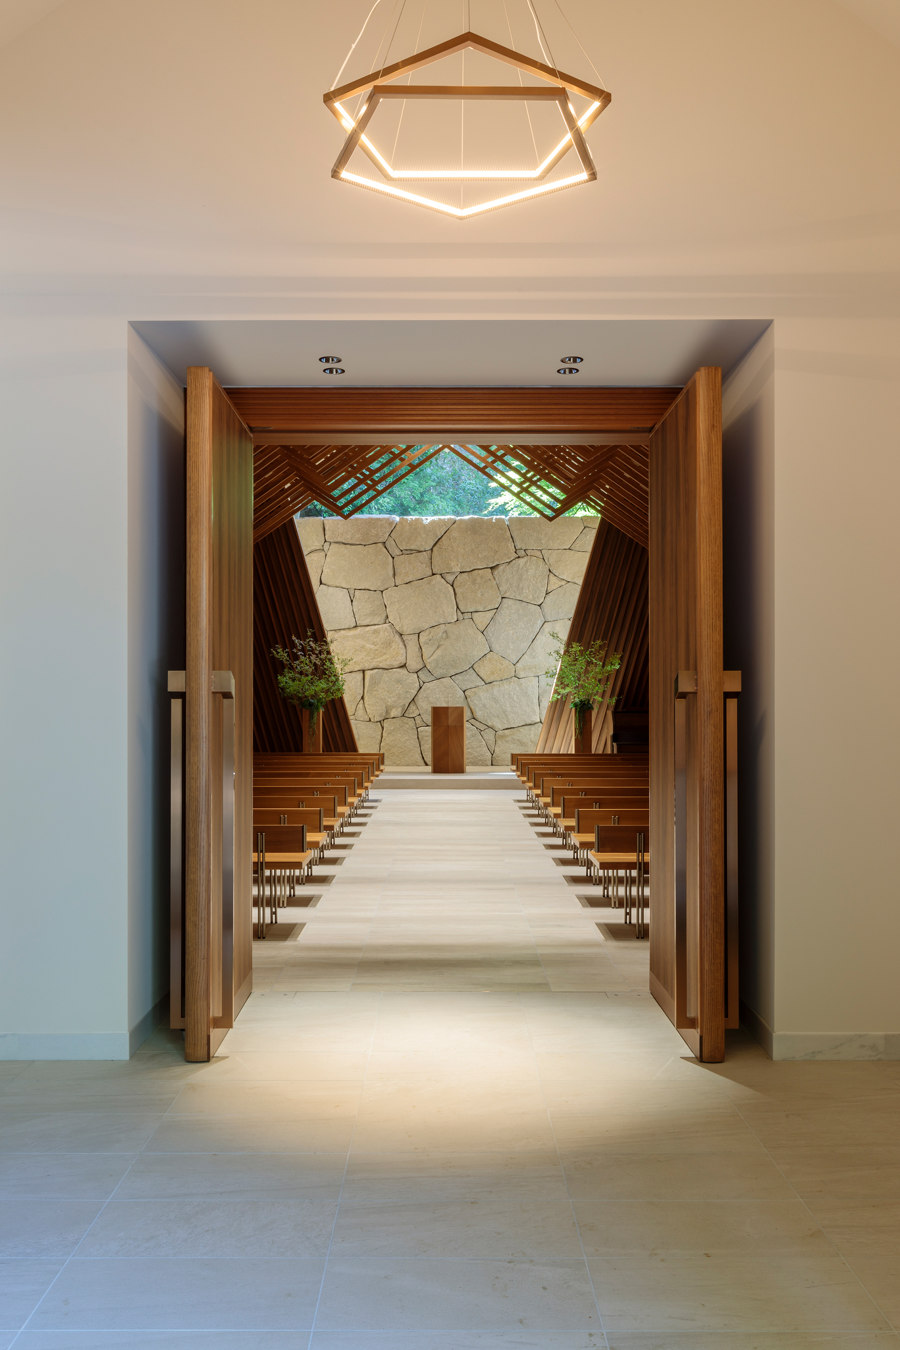 The Westin Miyako Kyoto / Chapel Renovation by KATORI archi+design associates | Church architecture / community centres